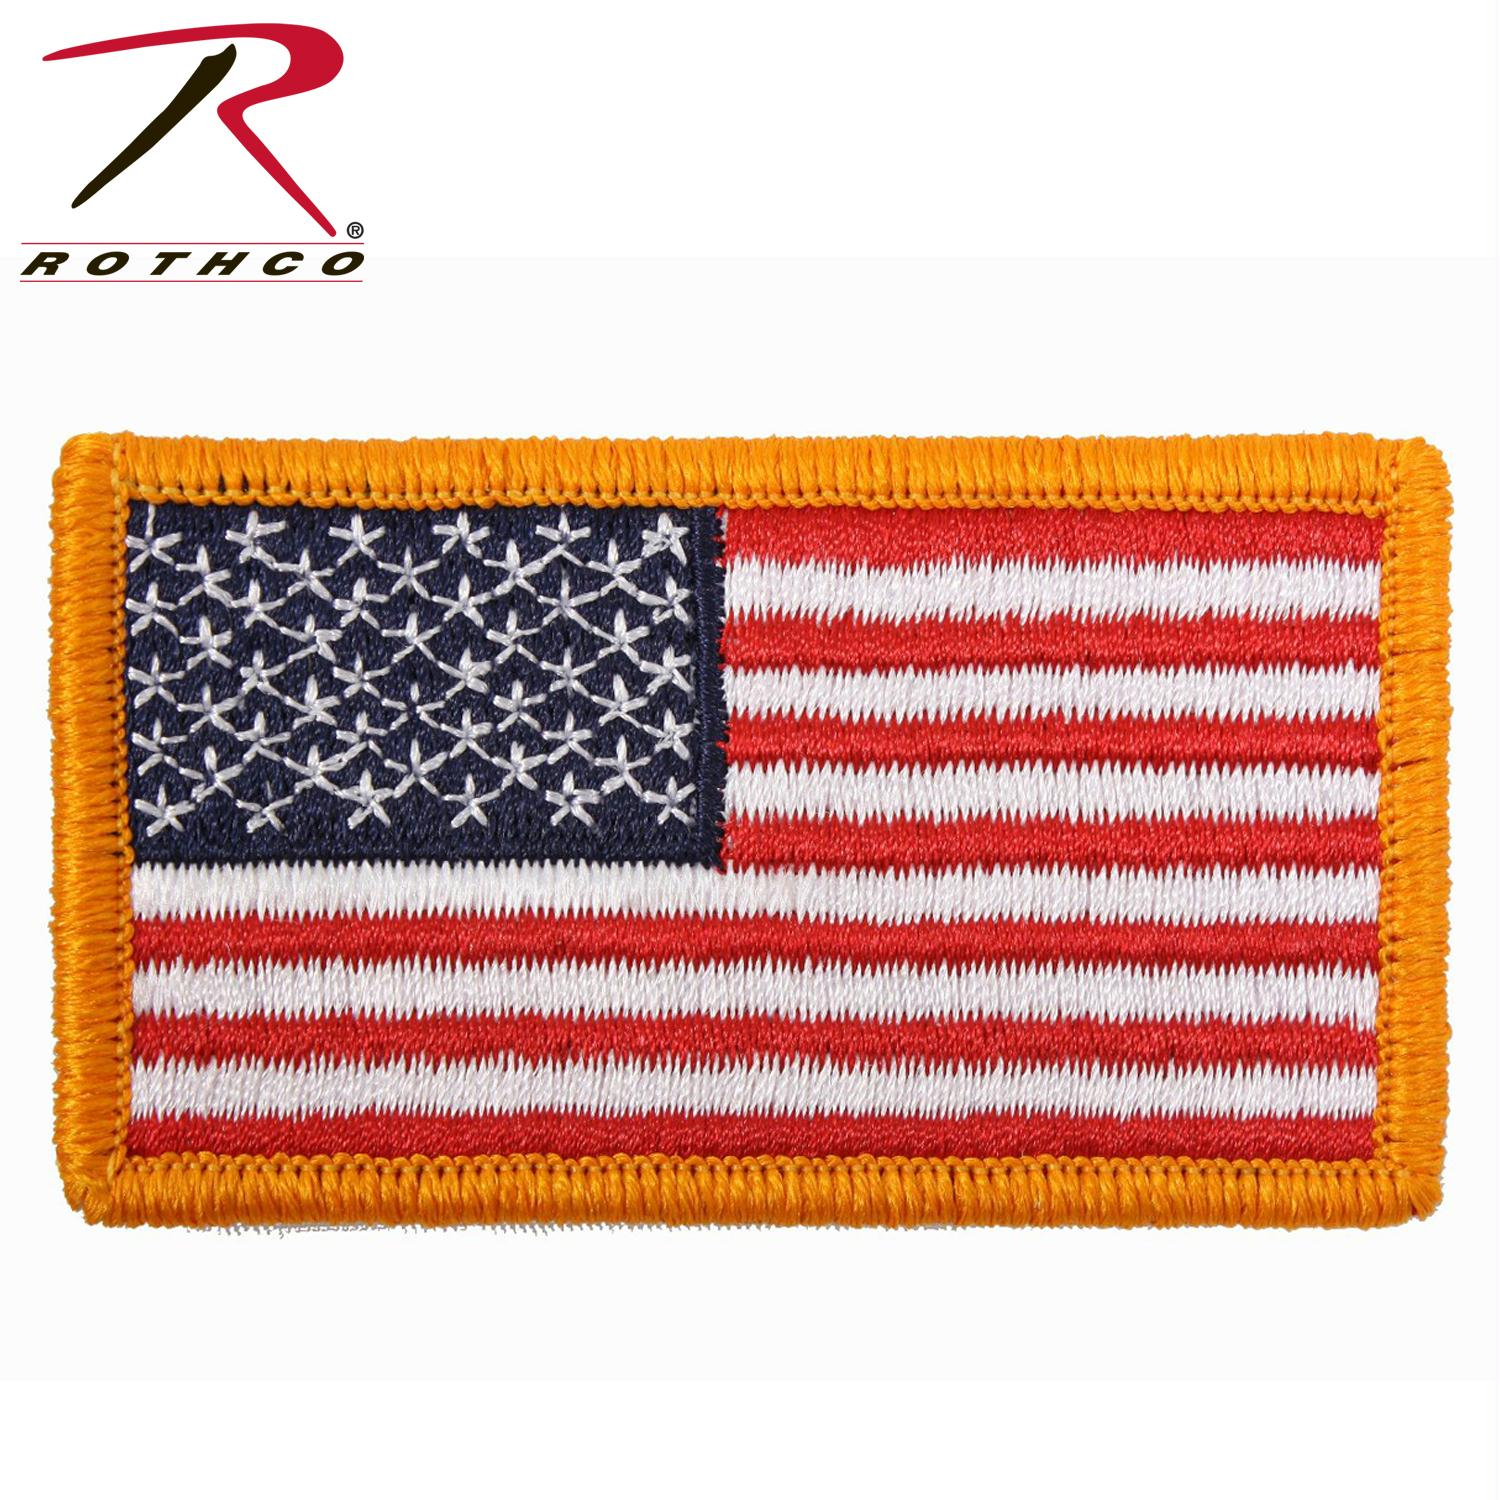 Rothco American Flag Patch - Red White Blue with Yellow Border / Normal / Bulk Packaging